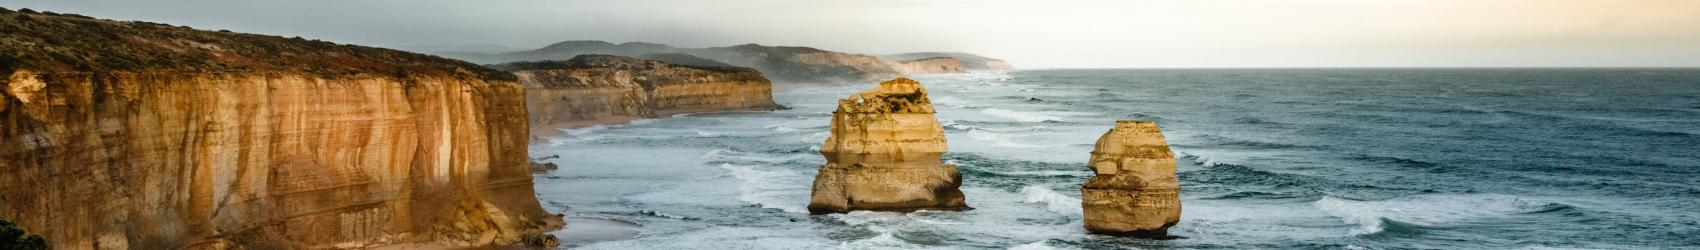 Daniel Sessler - Great Ocean Road